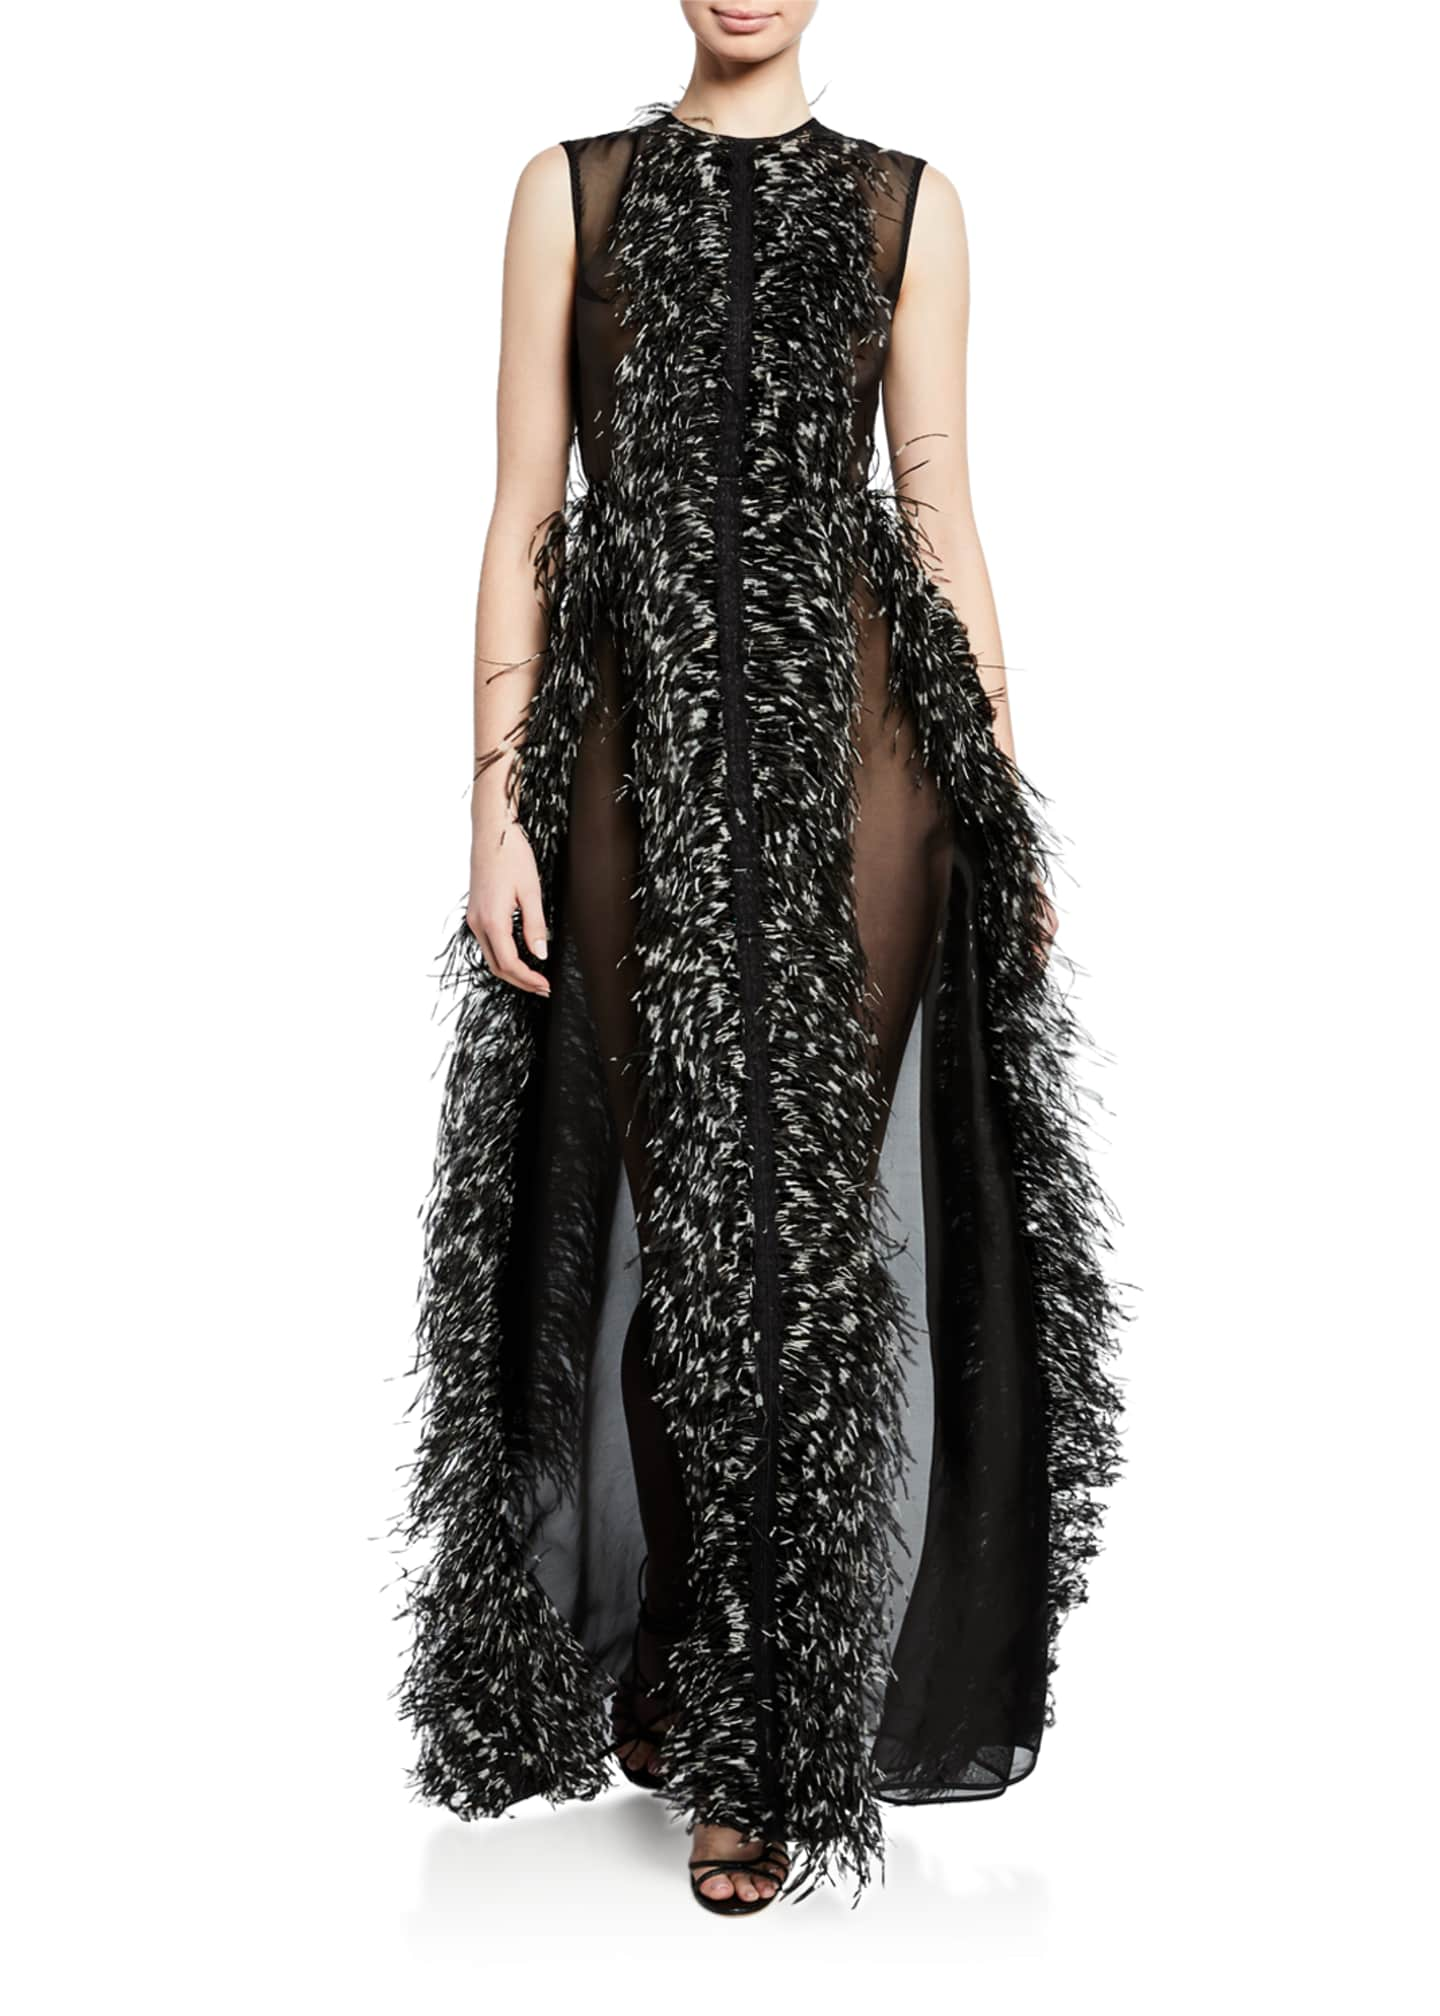 Huishan Zhang Sleeveless Tie-Dye Feathered Tulle Gown